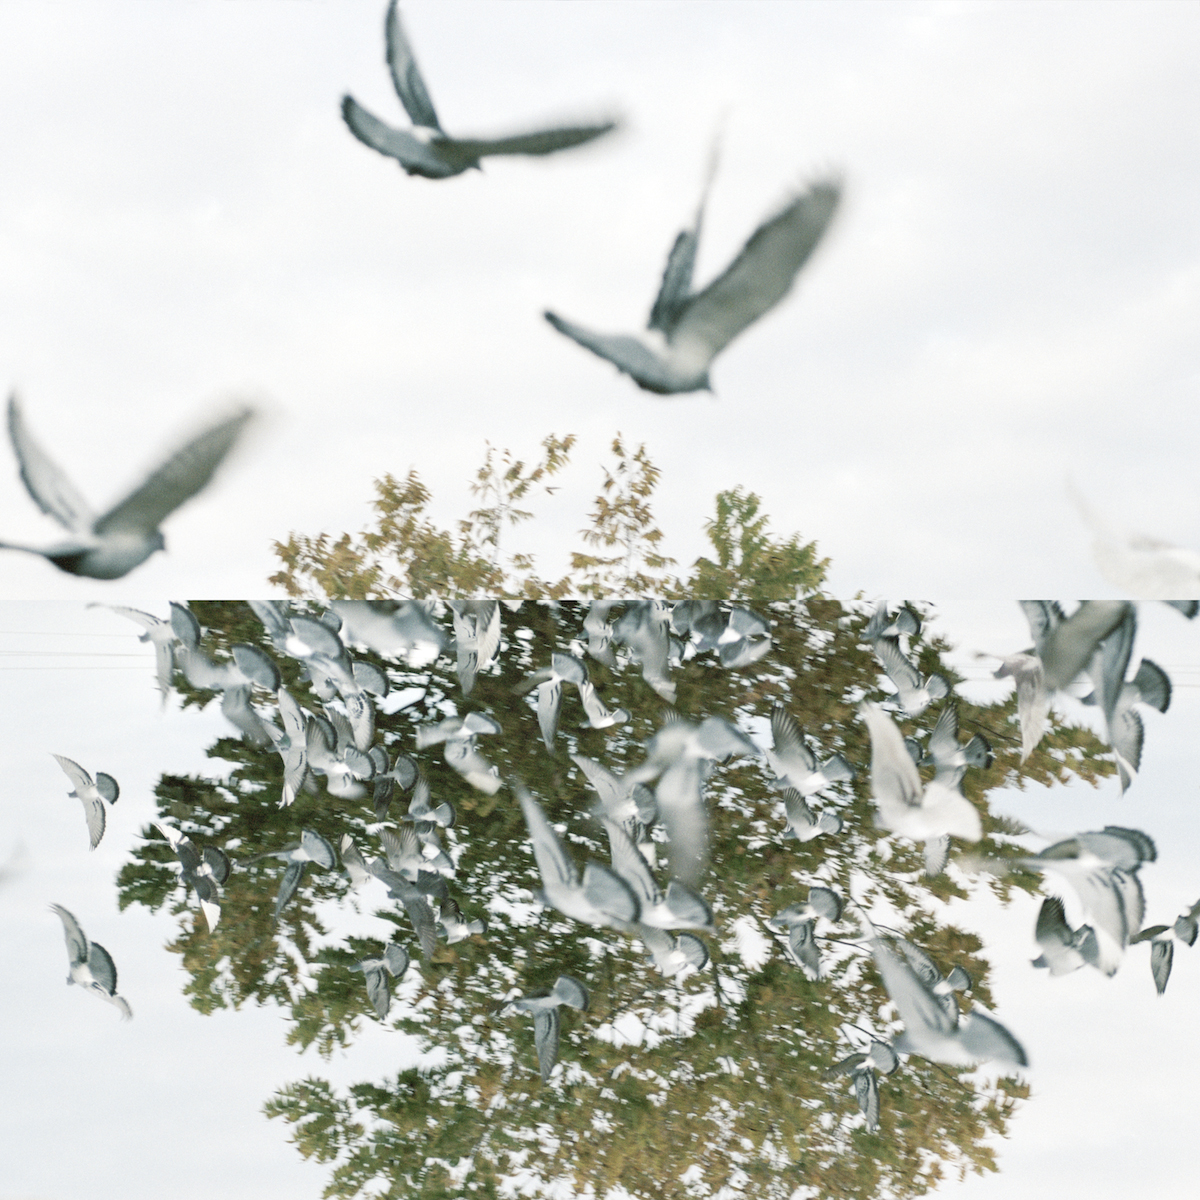 The Illuded Perception of Flight